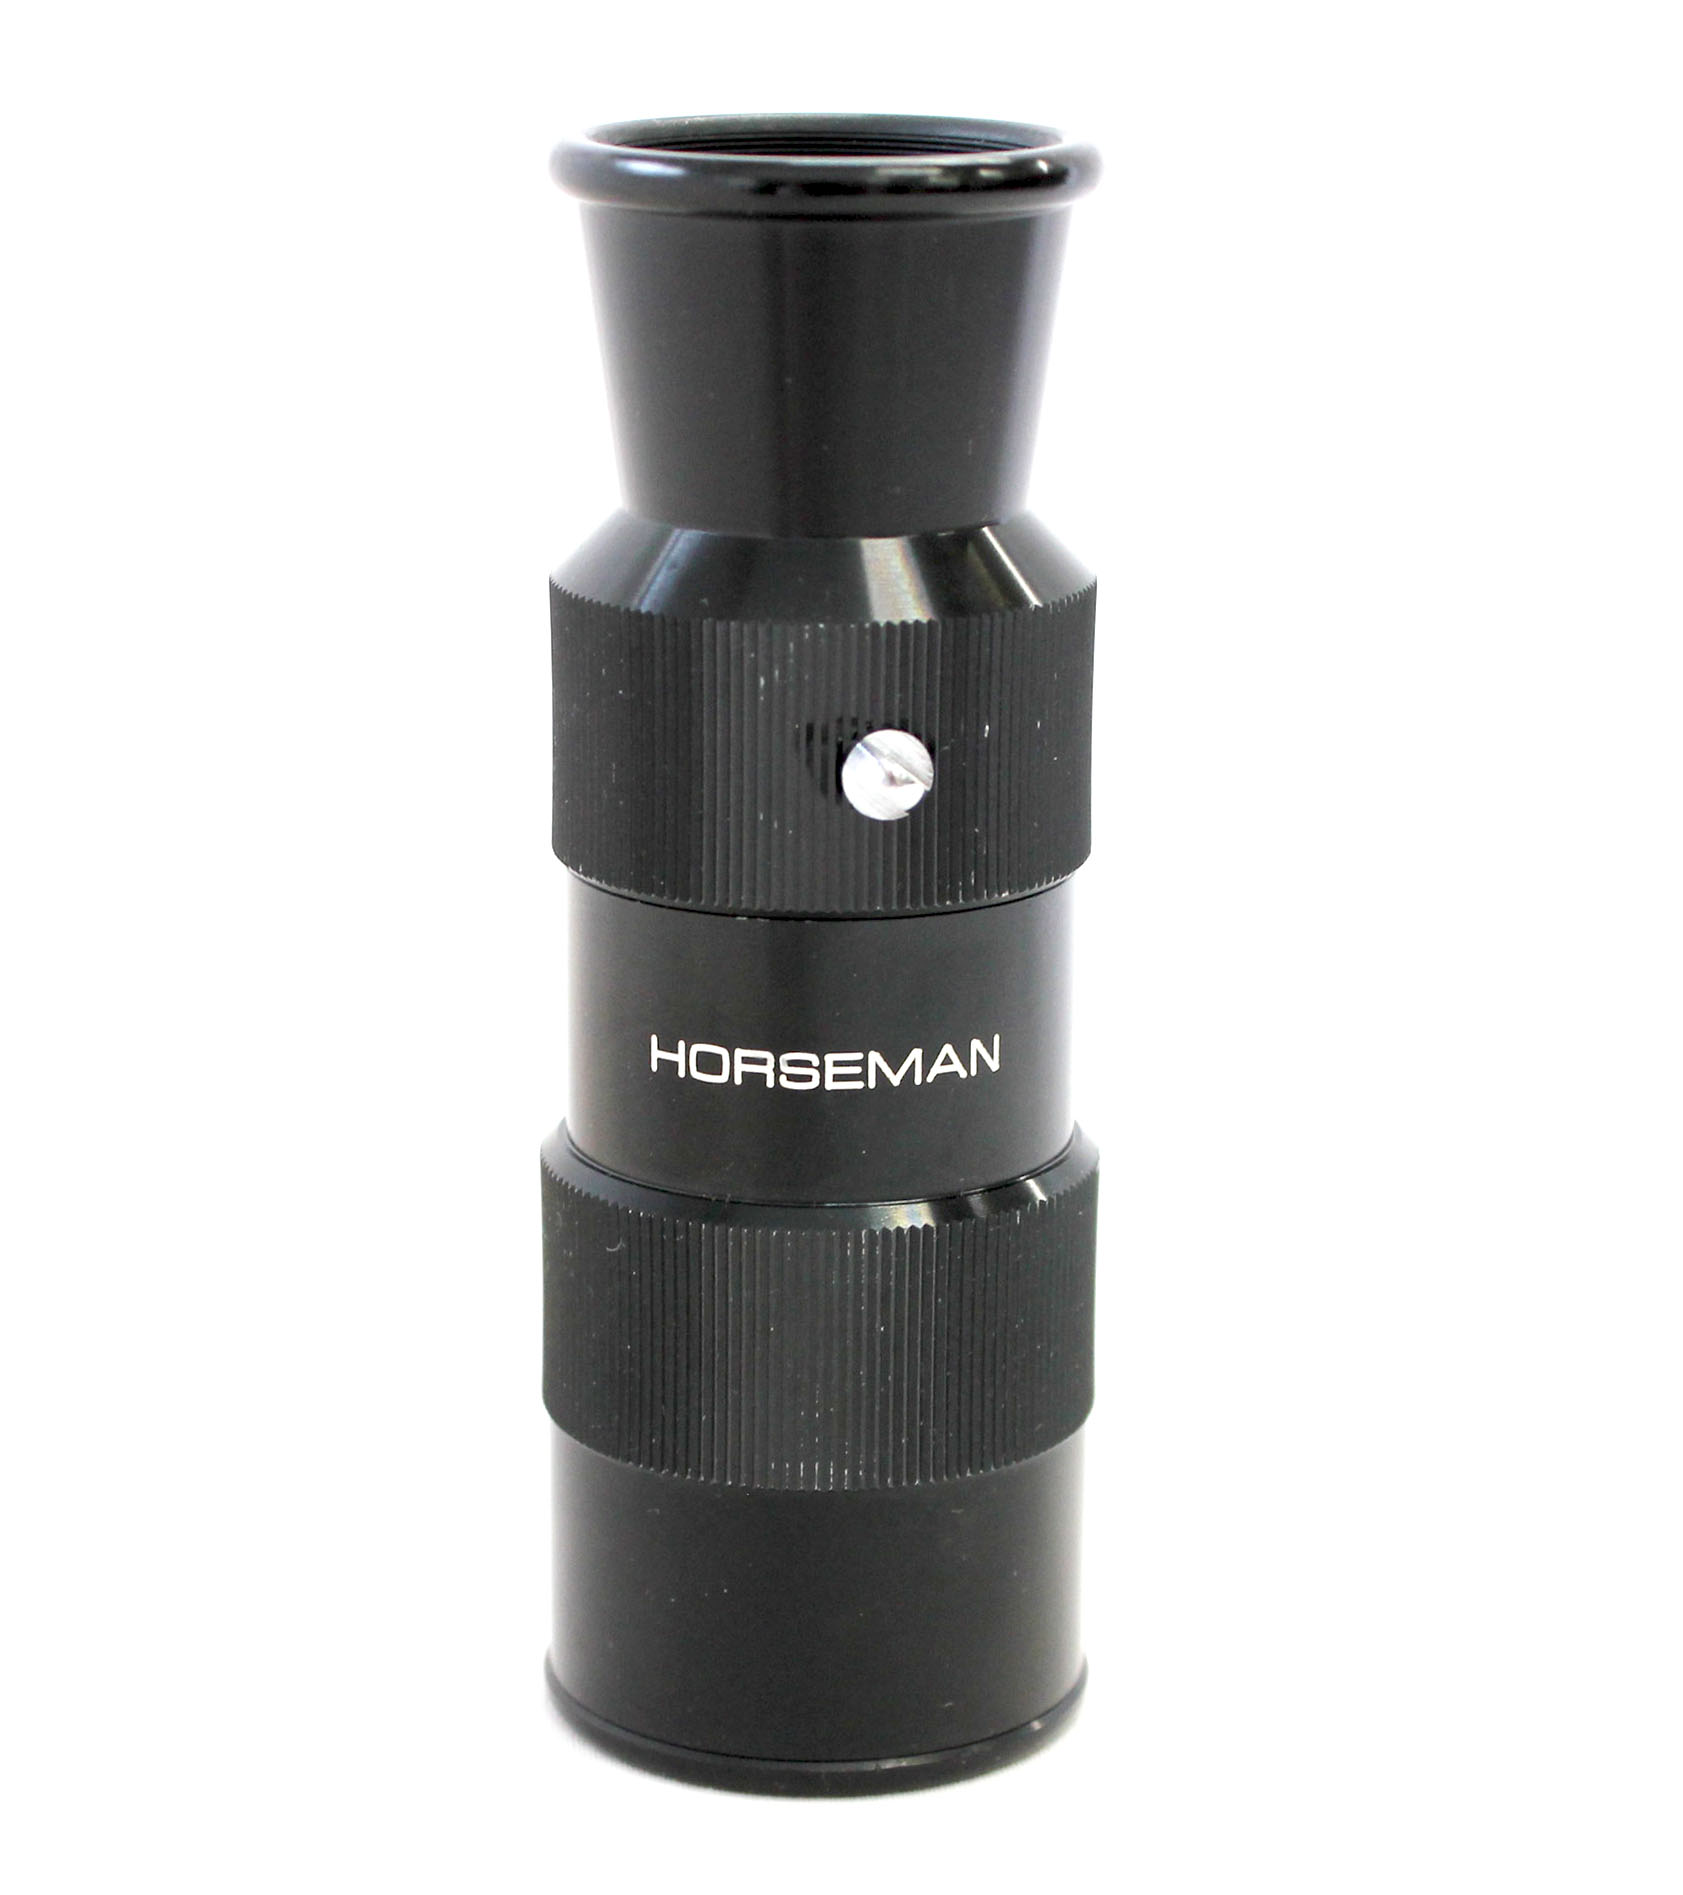 Horseman Focusing Magnifier Long Lupe 6x from Japan Photo 0